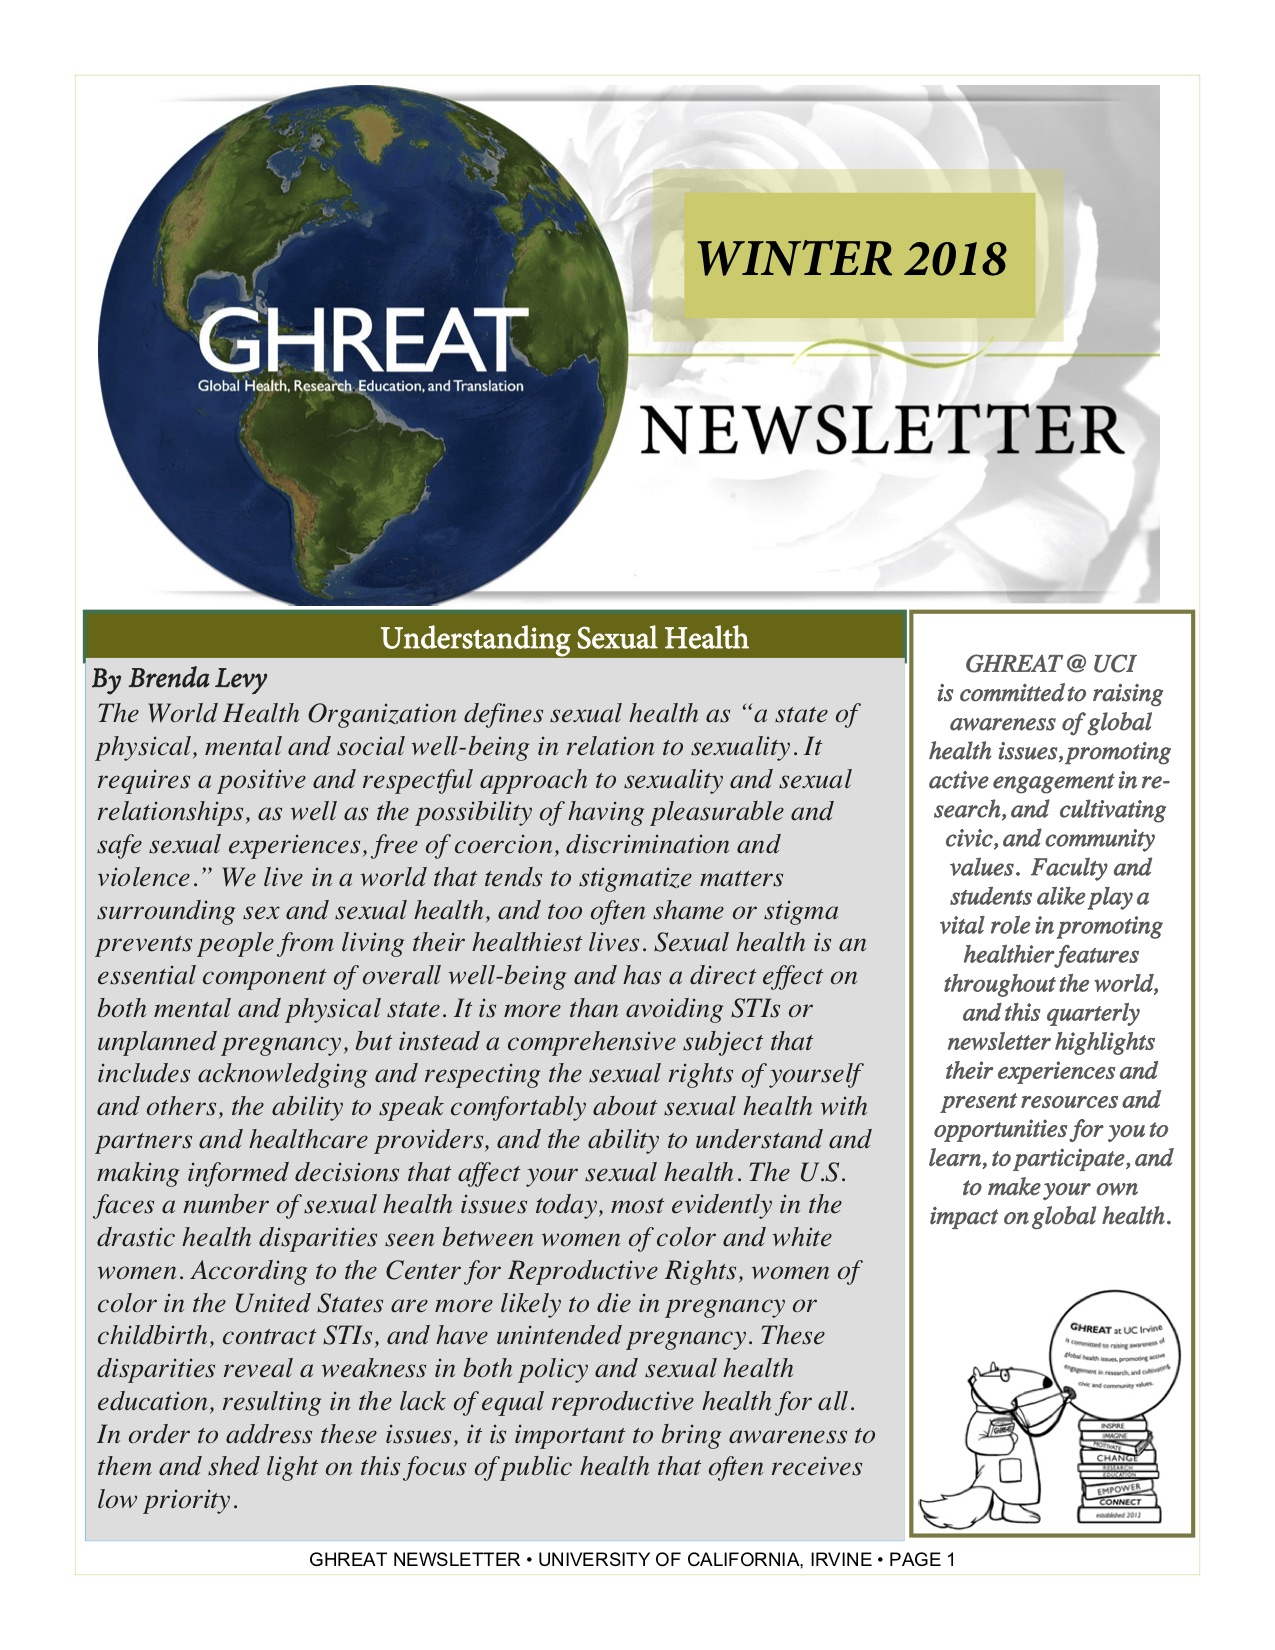 Winter 2018 GHREAT Newsletter